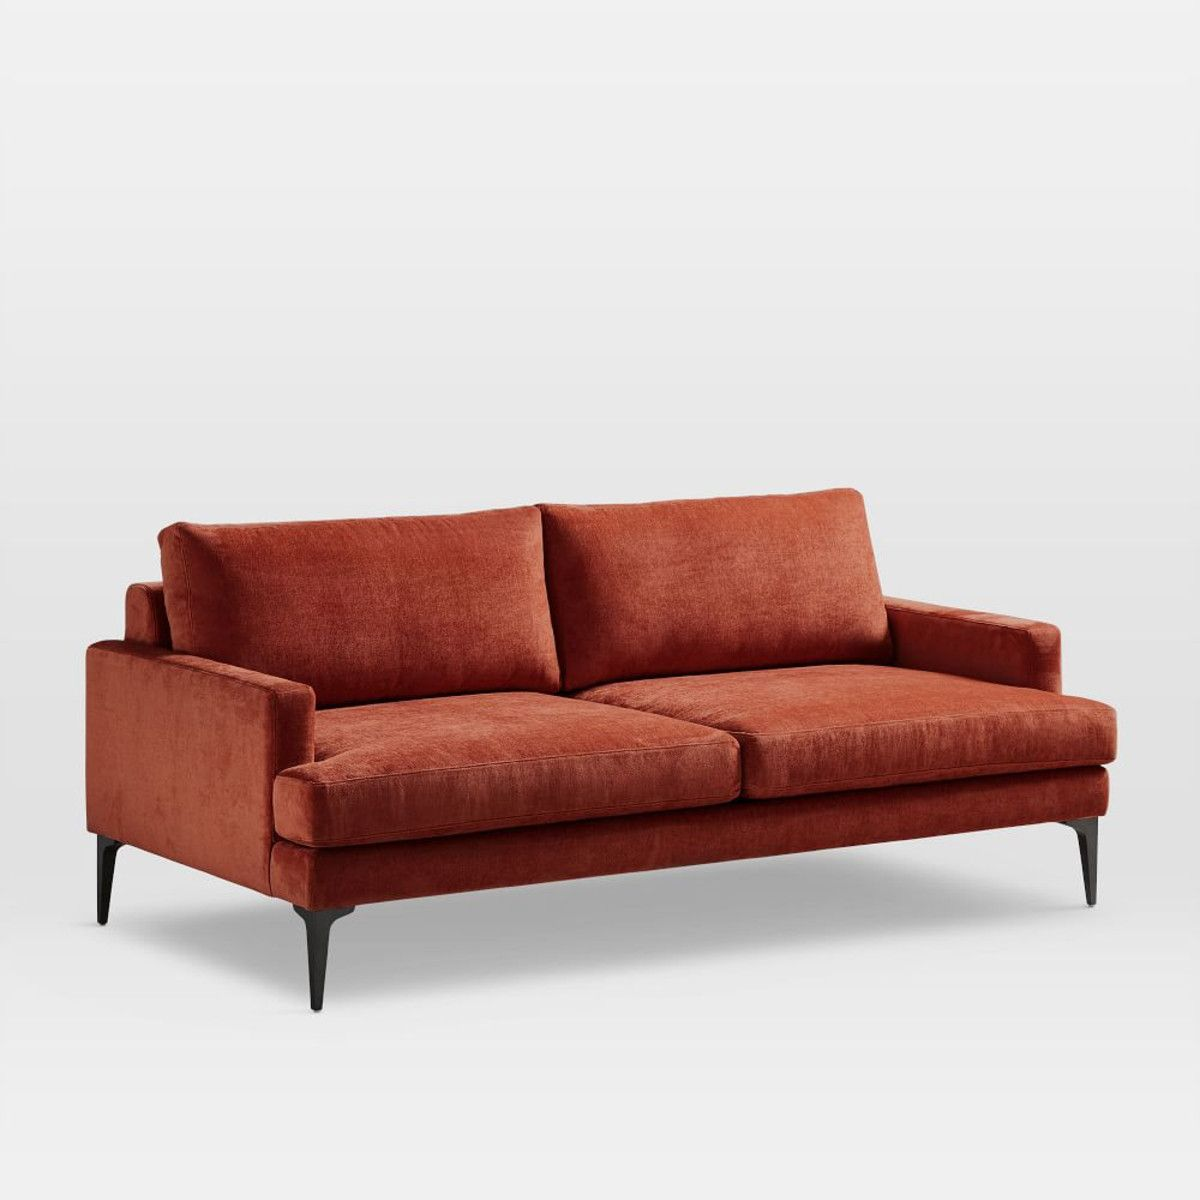 Terrific Andes Sofa 194 Cm Rust Distressed Velvet In 2019 Ocoug Best Dining Table And Chair Ideas Images Ocougorg